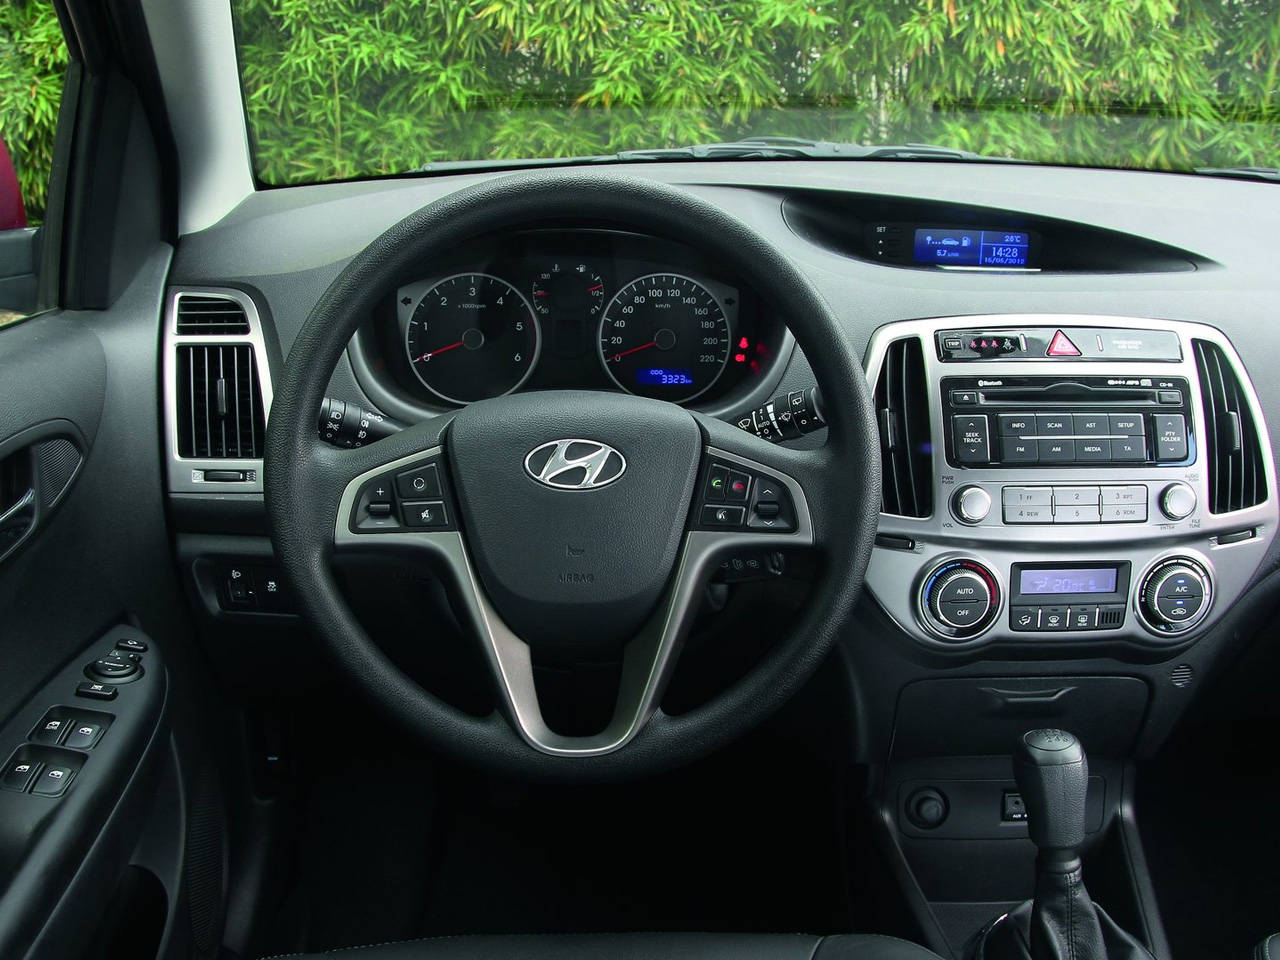 hyundai i20 2013 interior muscle cars zone. Black Bedroom Furniture Sets. Home Design Ideas